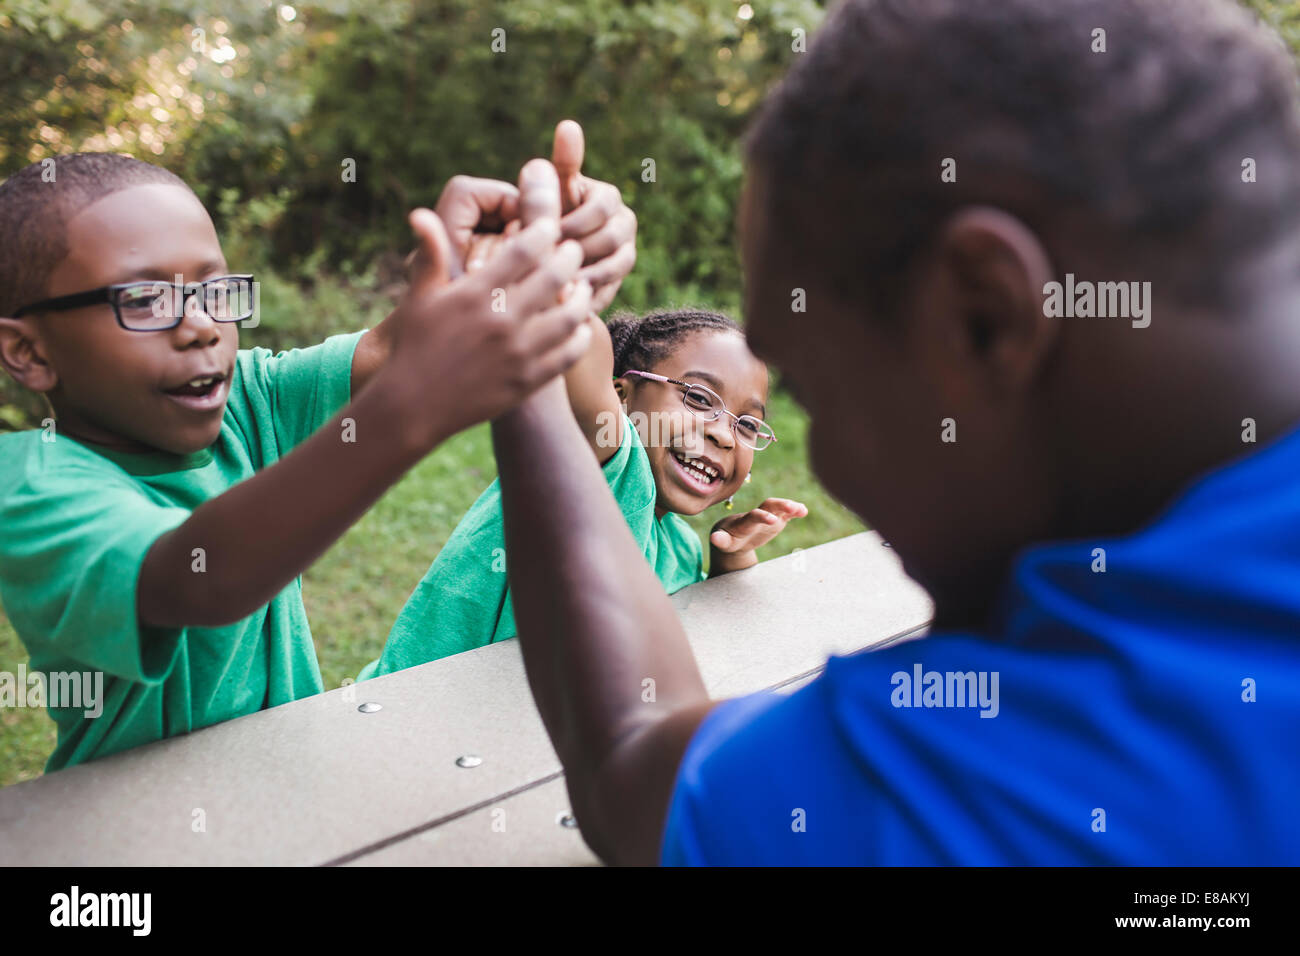 Father arm wrestling with son and daughter at parkland eco camp - Stock Image